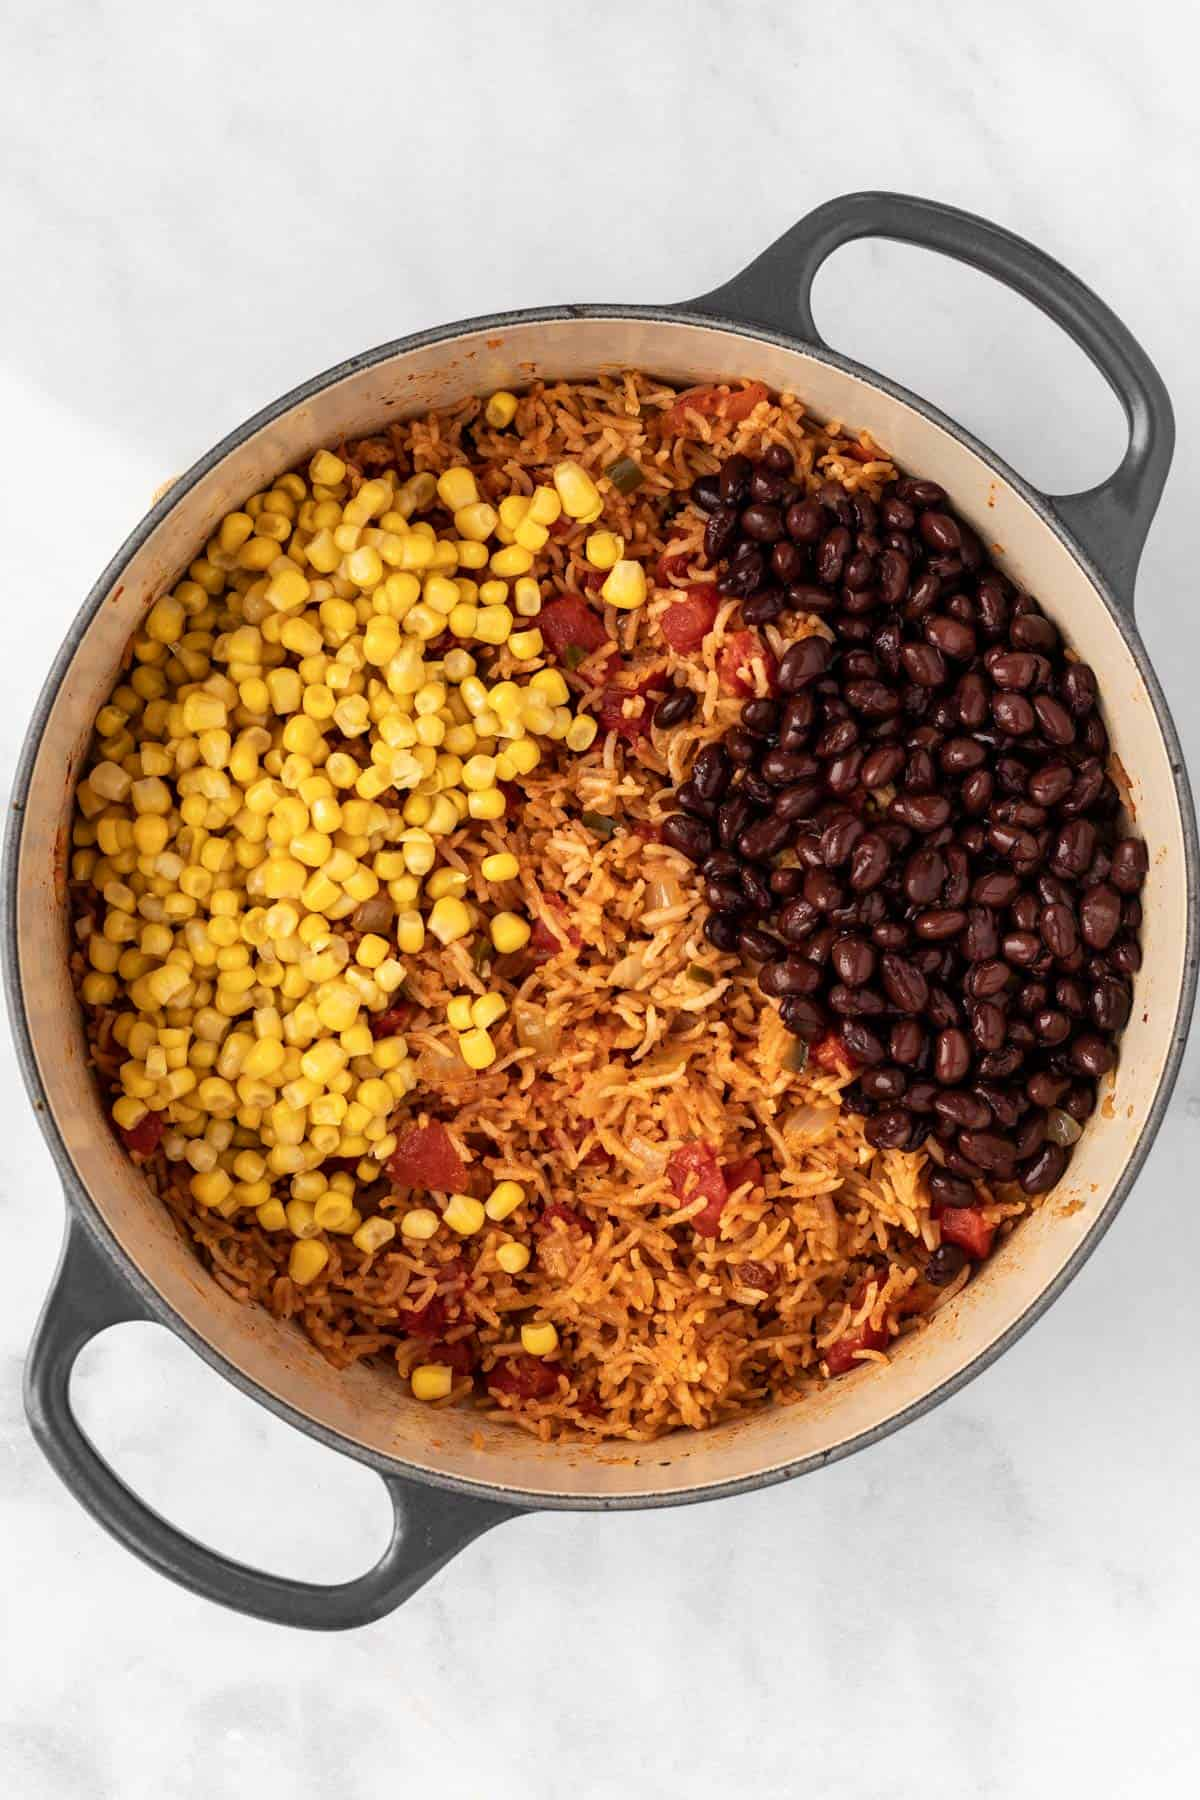 Cooked rice mixture in a dutch oven with corn and black beans on top.